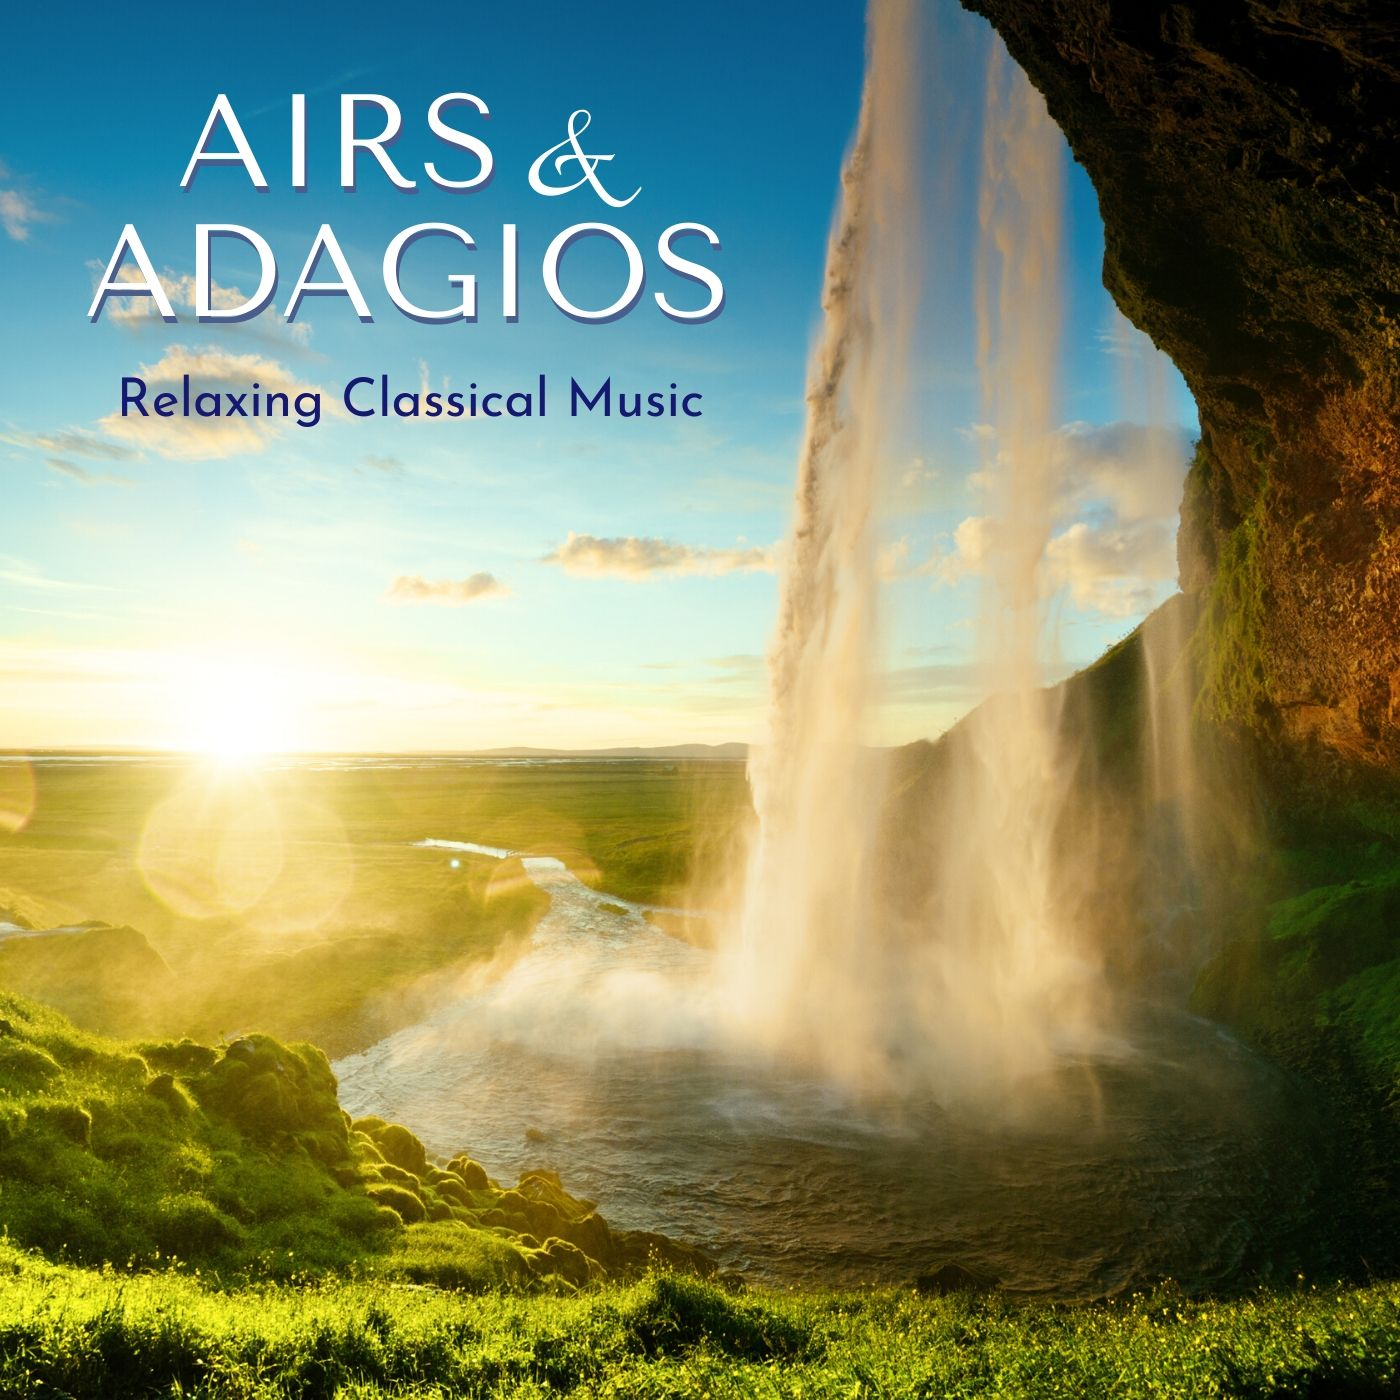 Airs & Adagios - Relaxing Classical Music